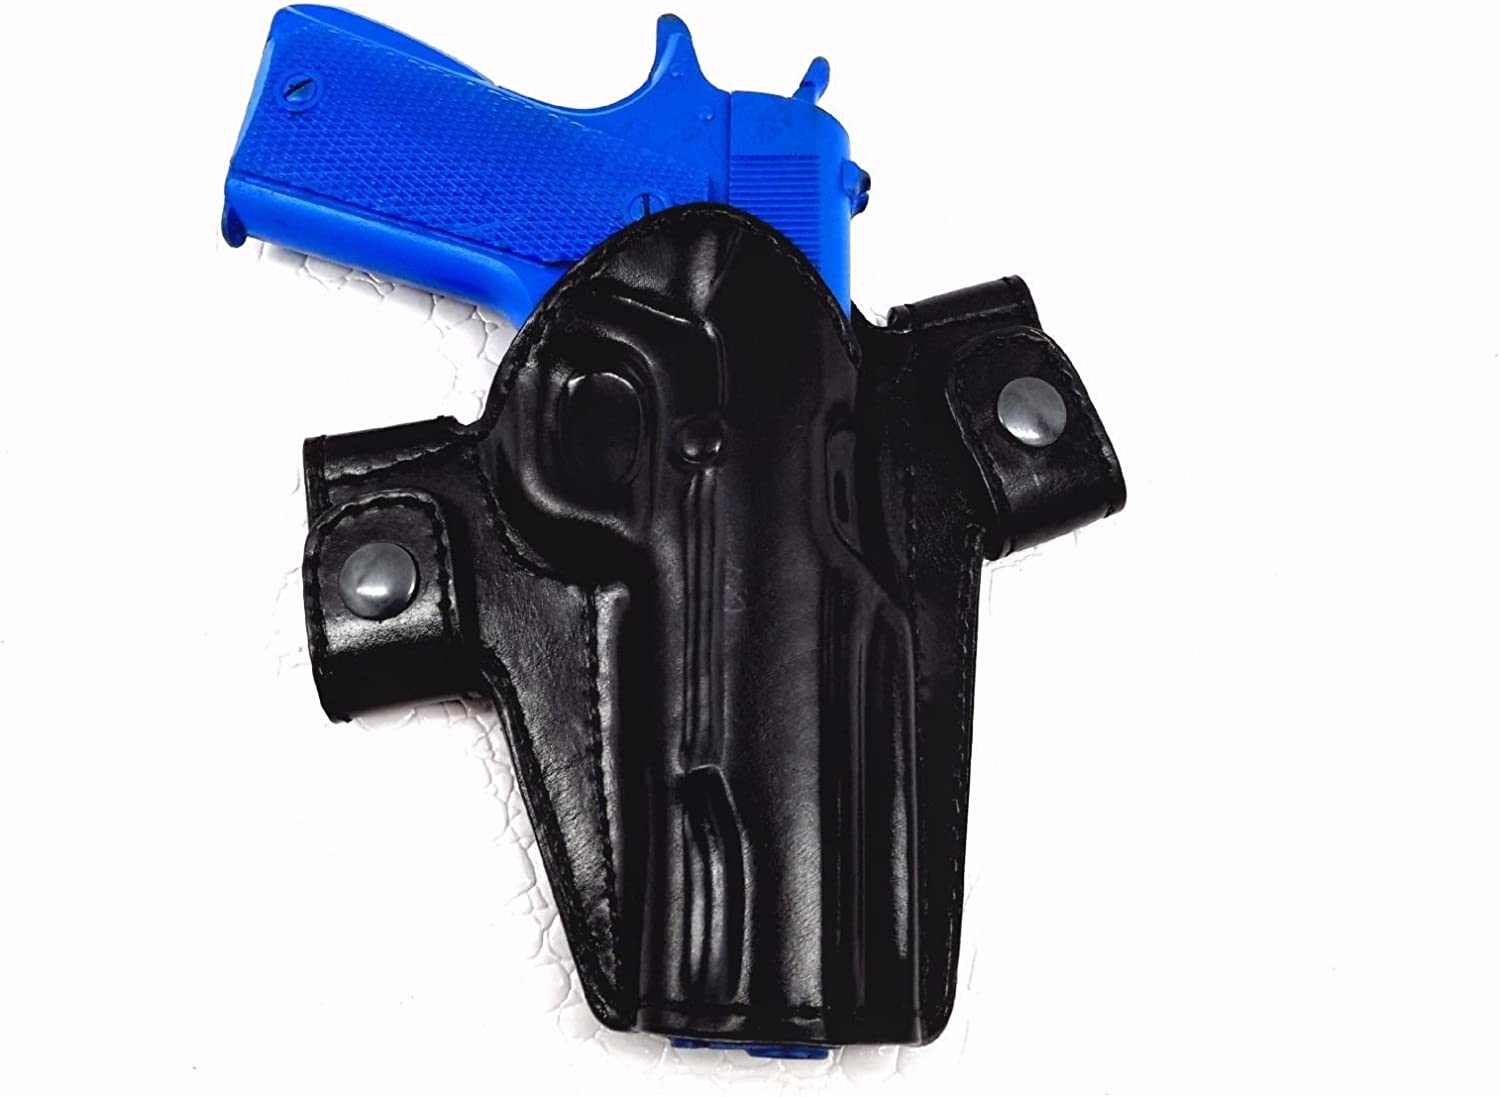 Dual Snap Holster for Glock 17 22 31, MyHolster